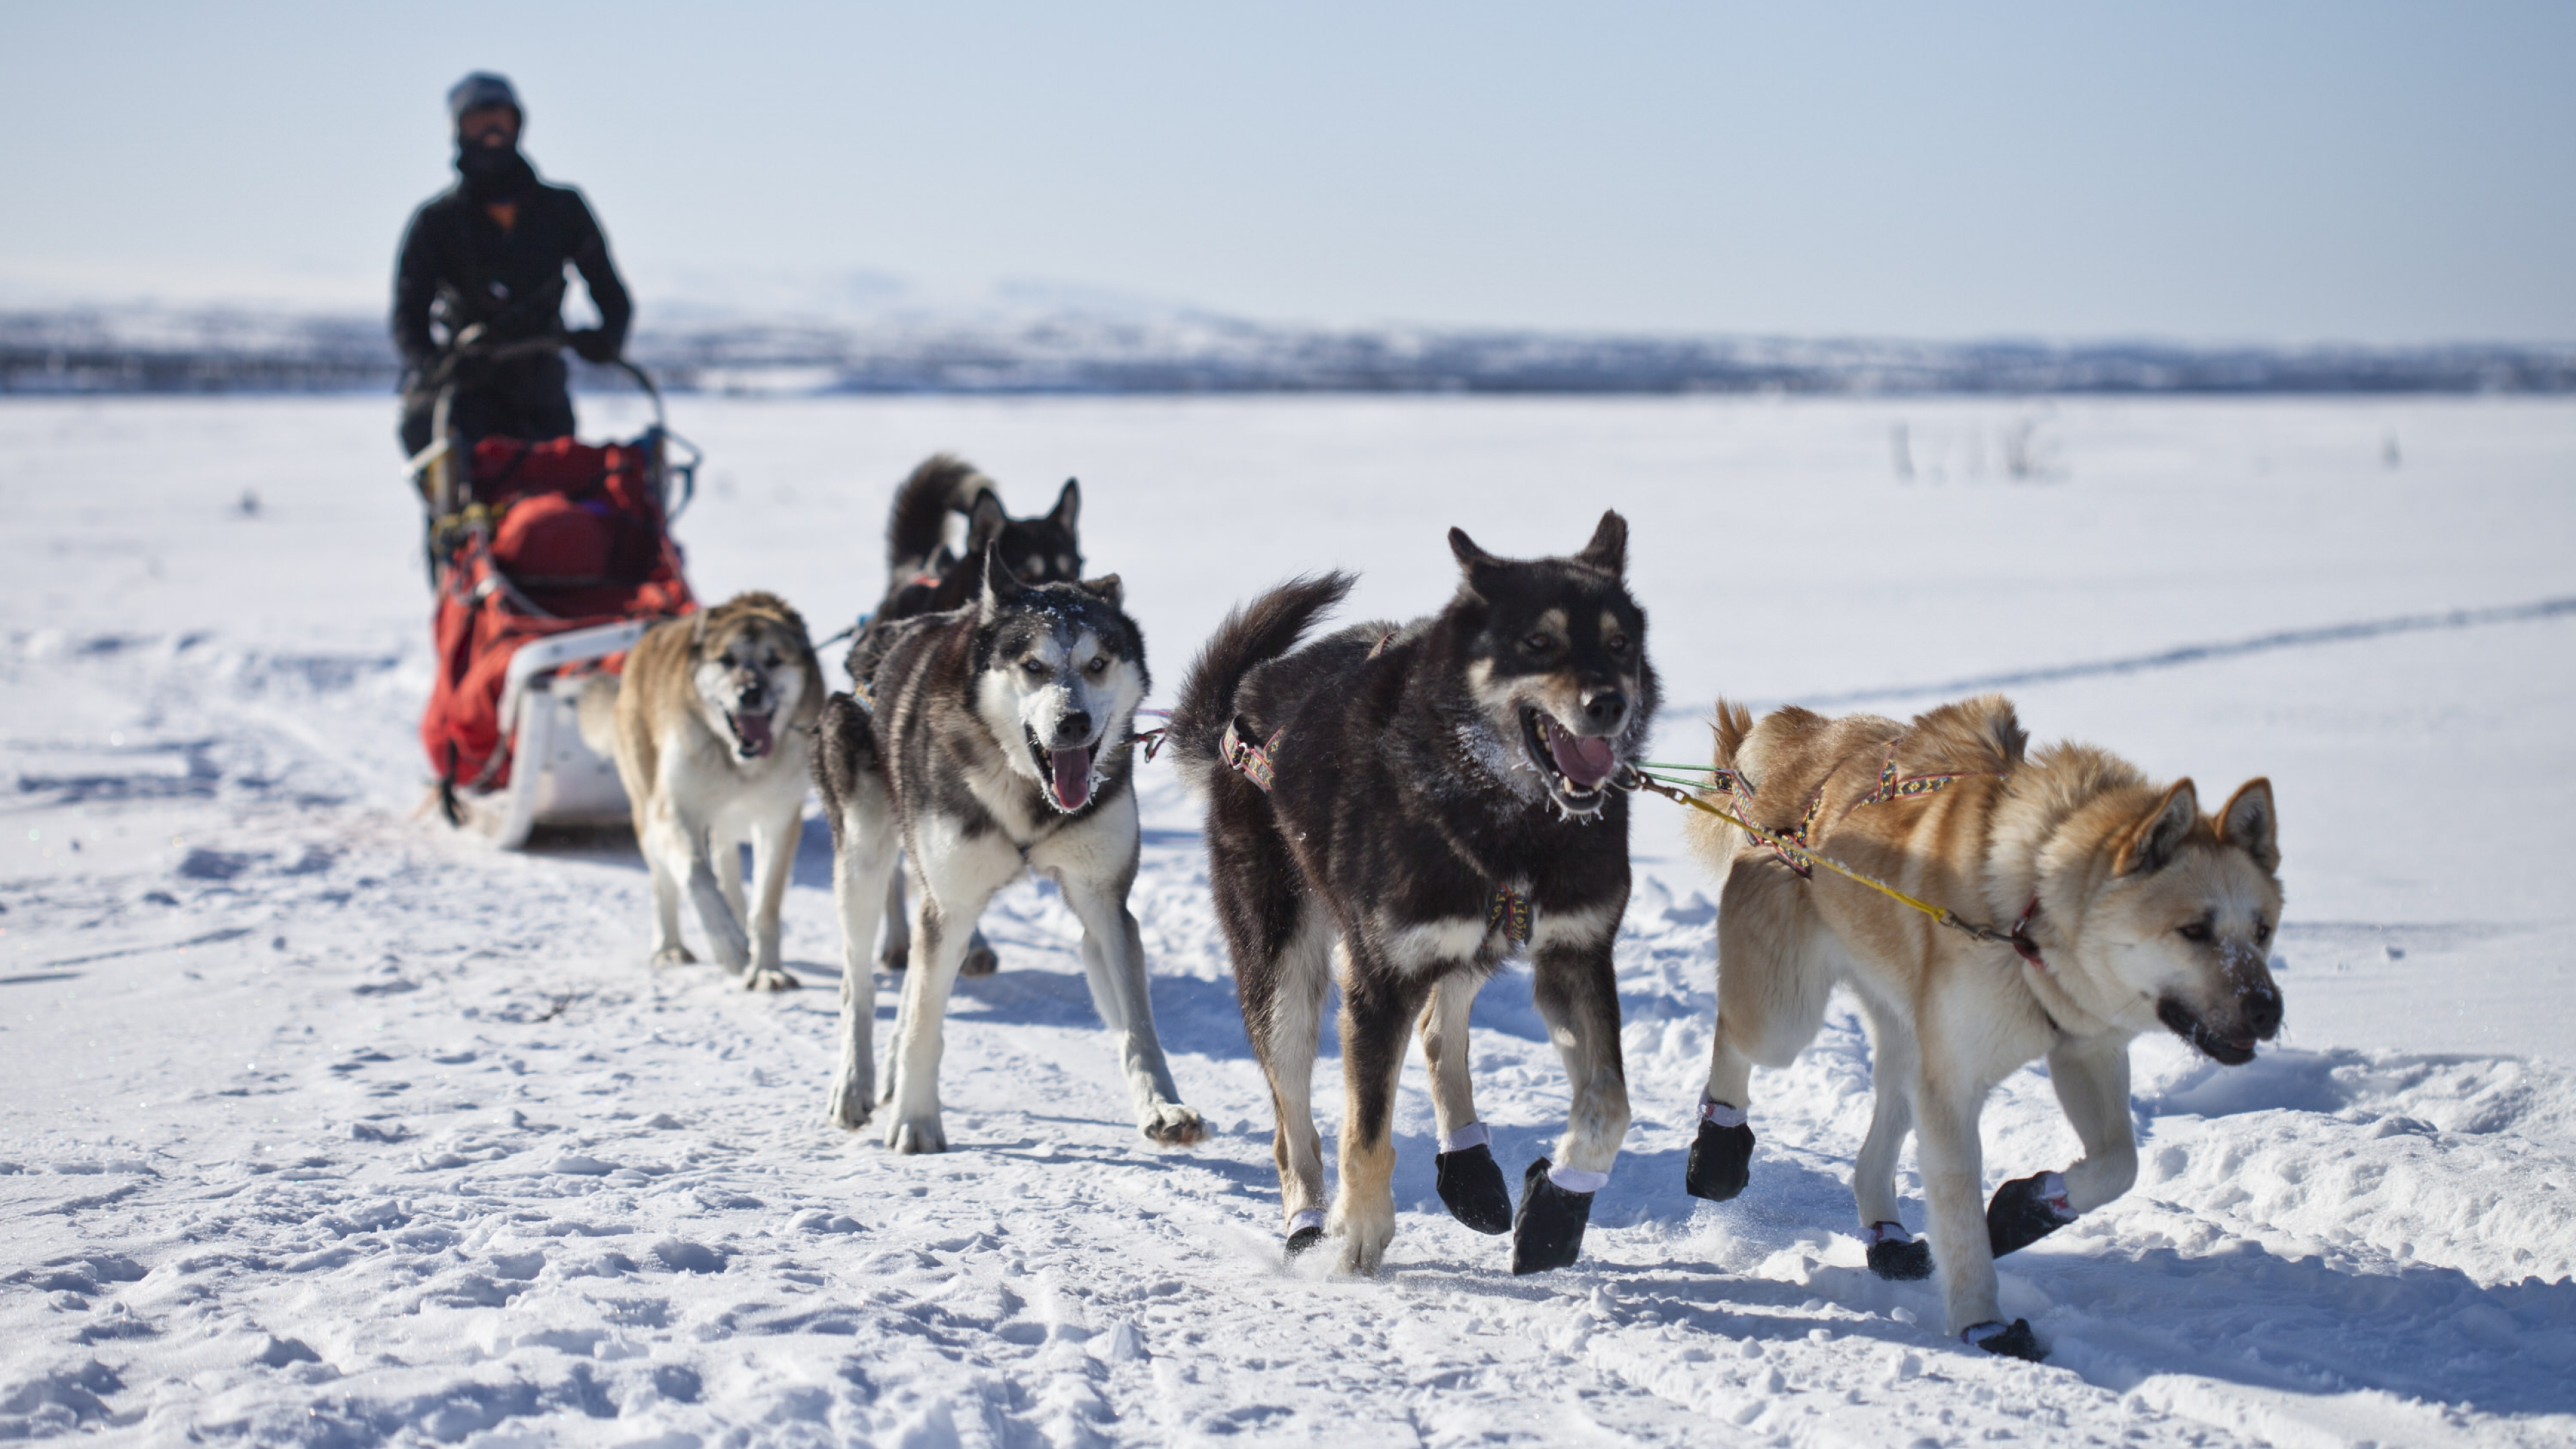 5 sled dogs pulling a park ranger on a sled in the snow at Denali National Park & Preserve